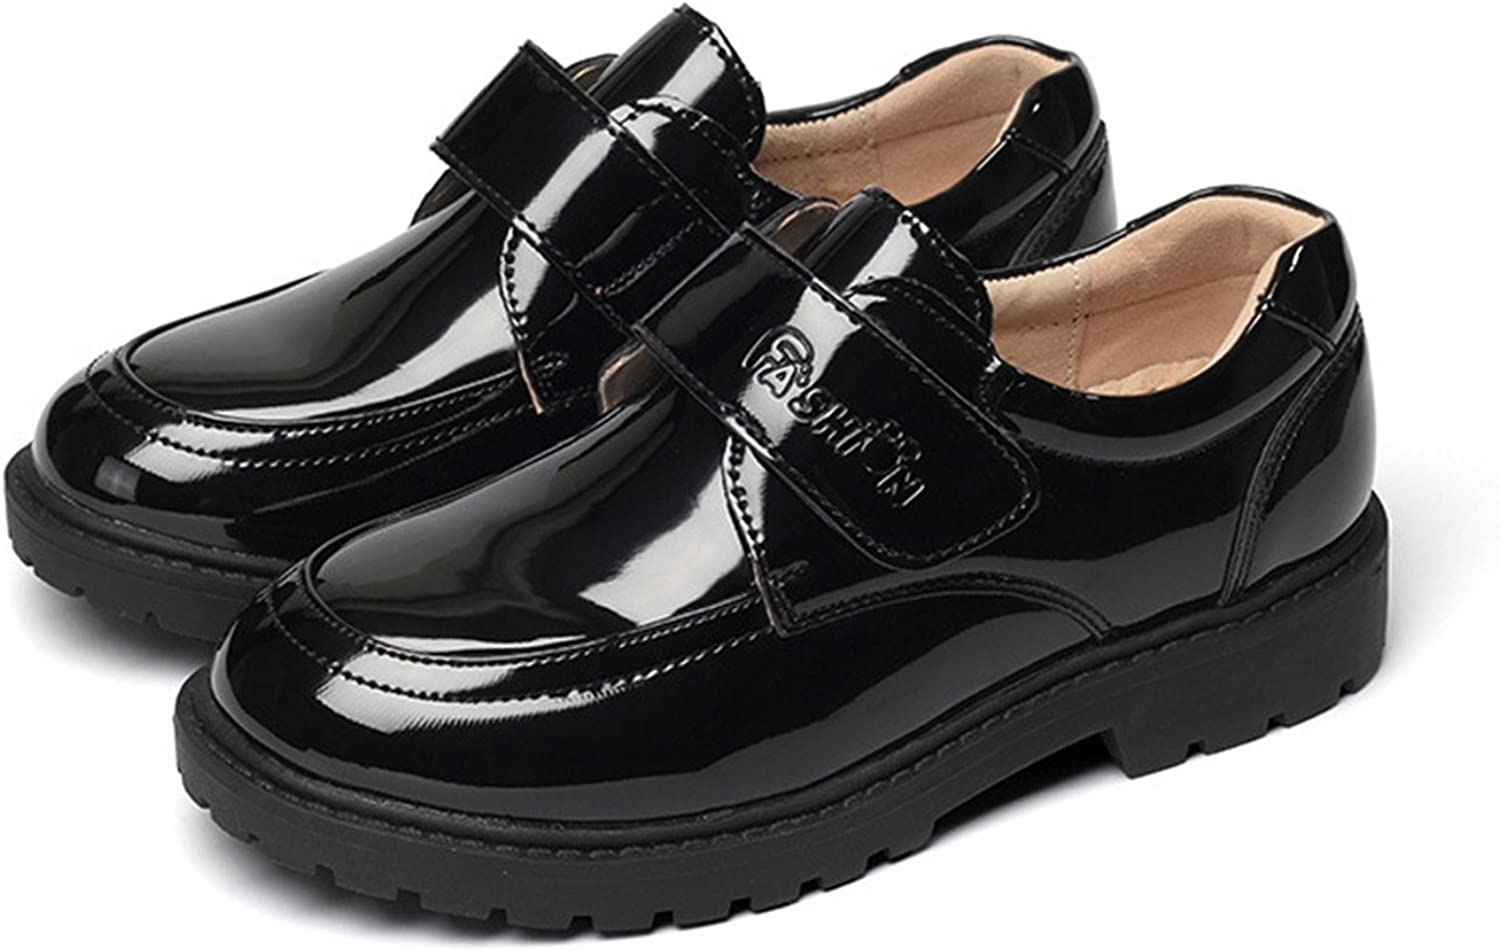 L.P.L Boys Loafers Kids Shoes Student Performance Flats Slip On Style Single Fastener Band Driving Shoes